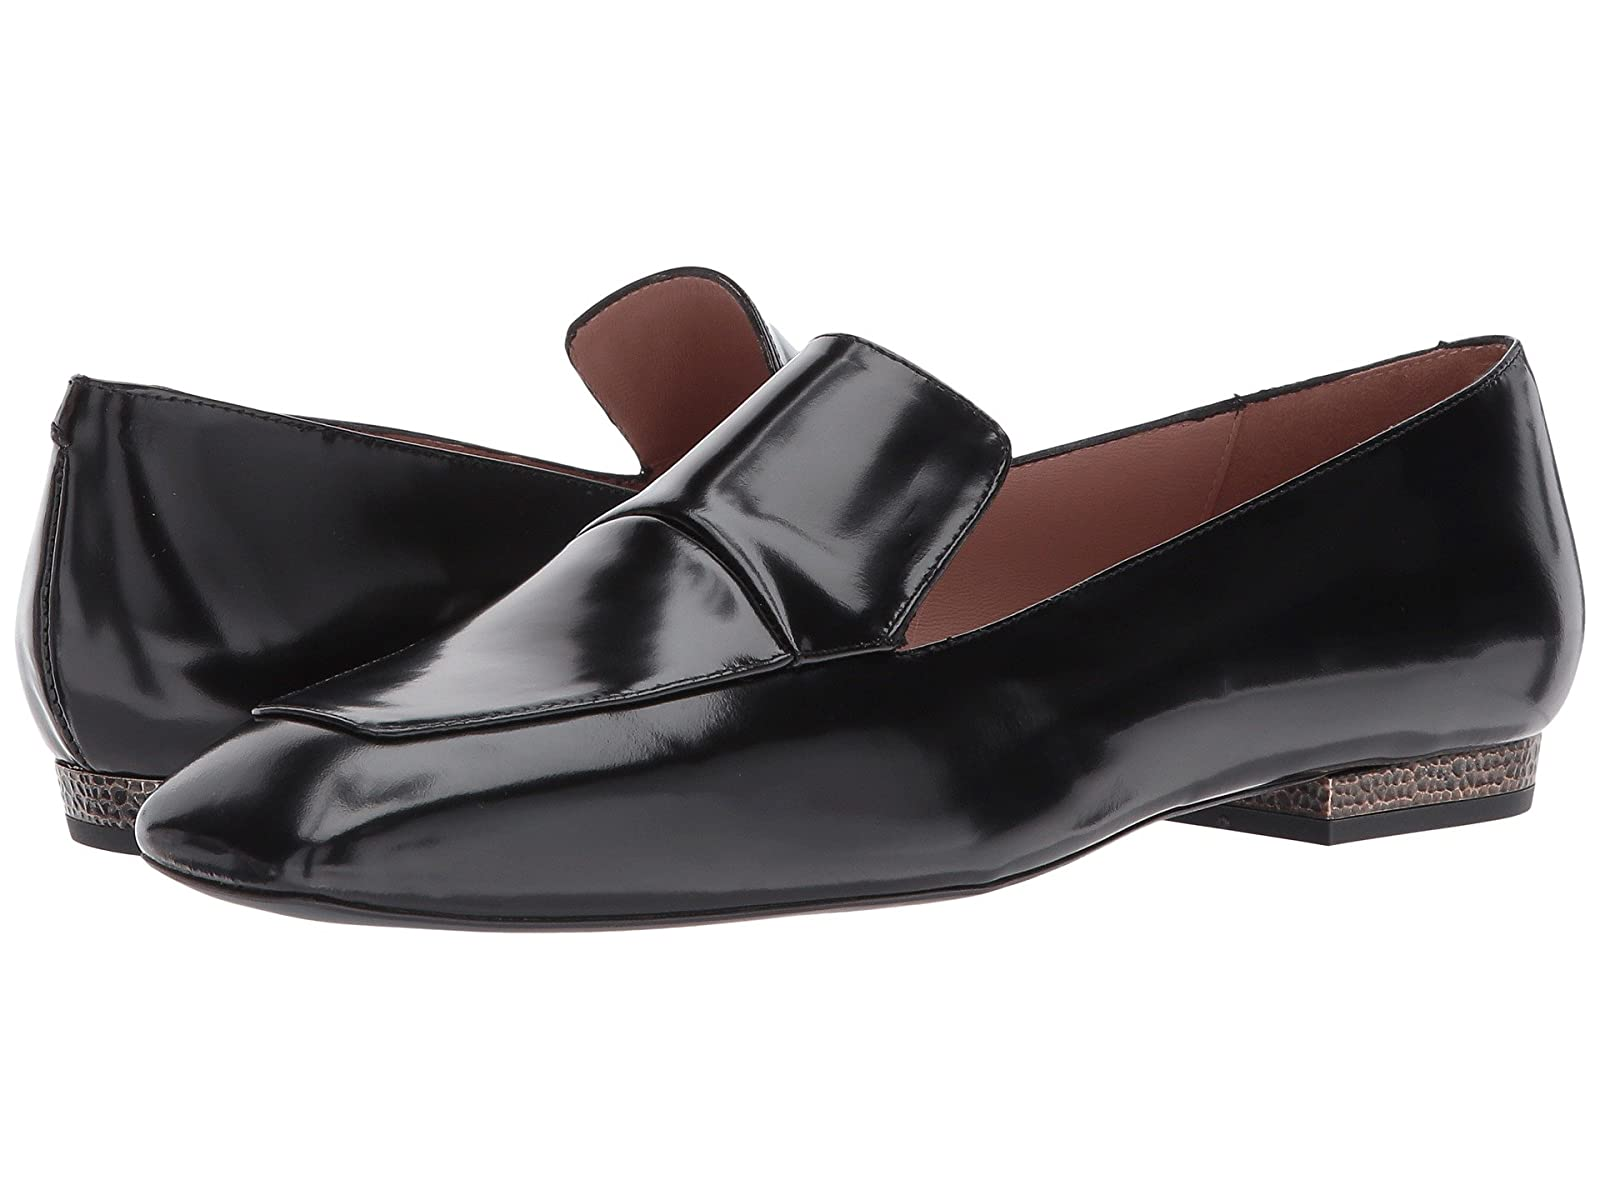 Jil Sander Navy JN29005Cheap and distinctive eye-catching shoes